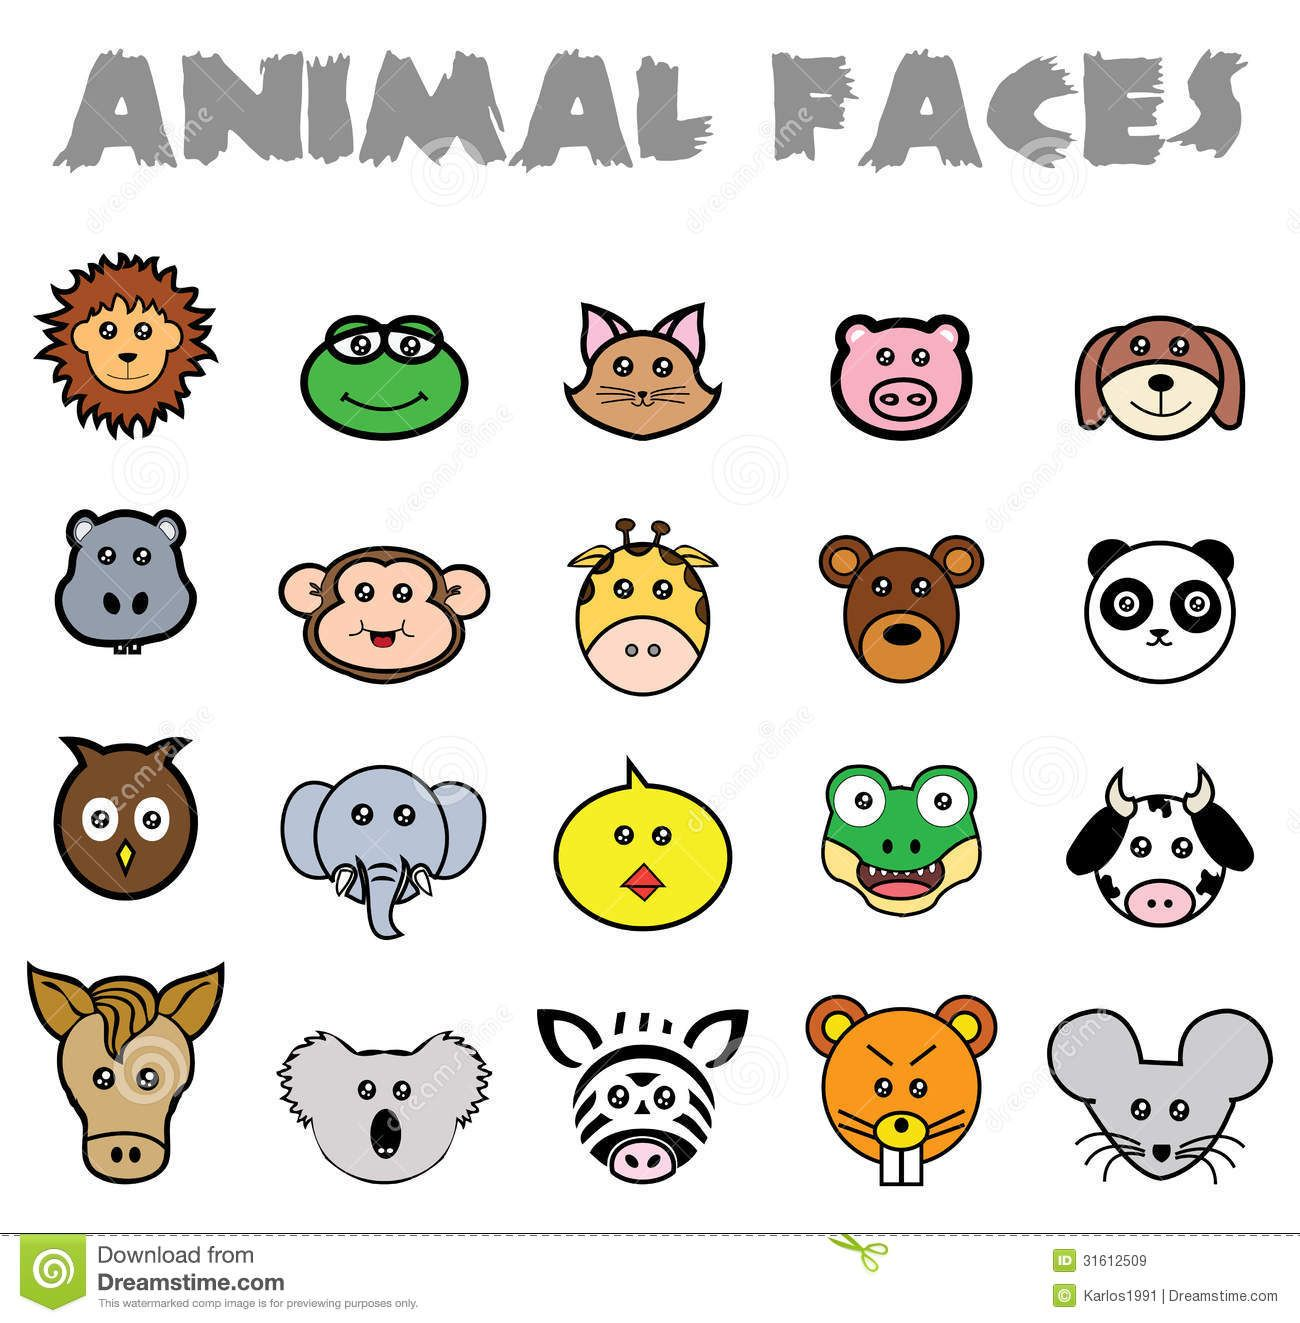 Simple Animal Face Drawing Donkey Google Search Art Project